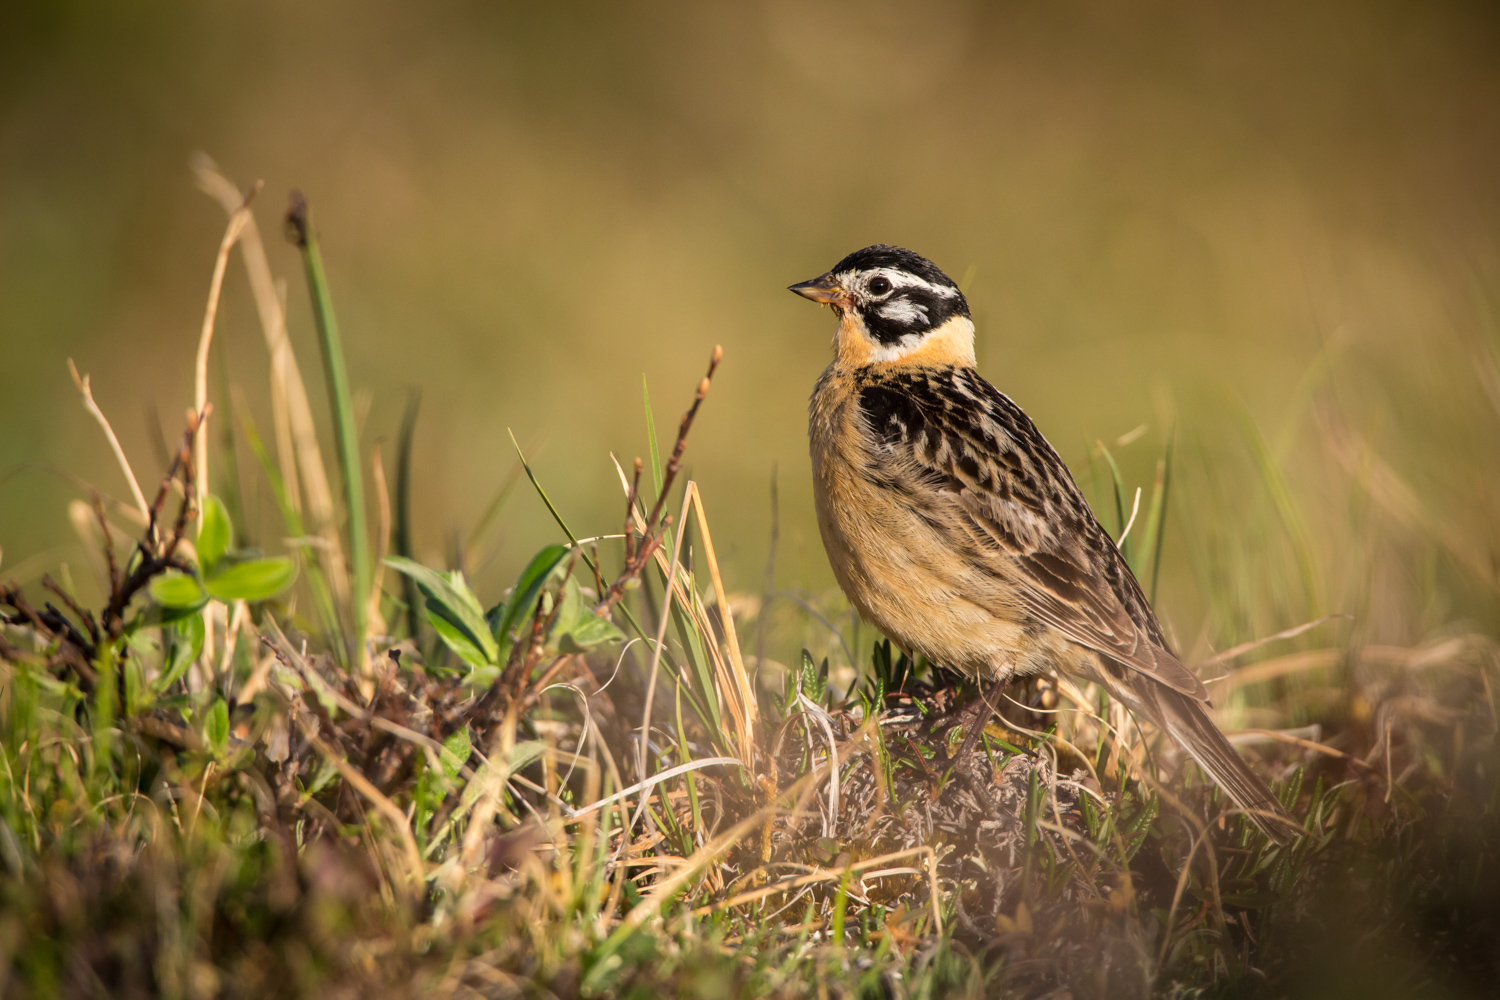 Review of the Olympus 300mm F4 PRO Lens - bird in the grass